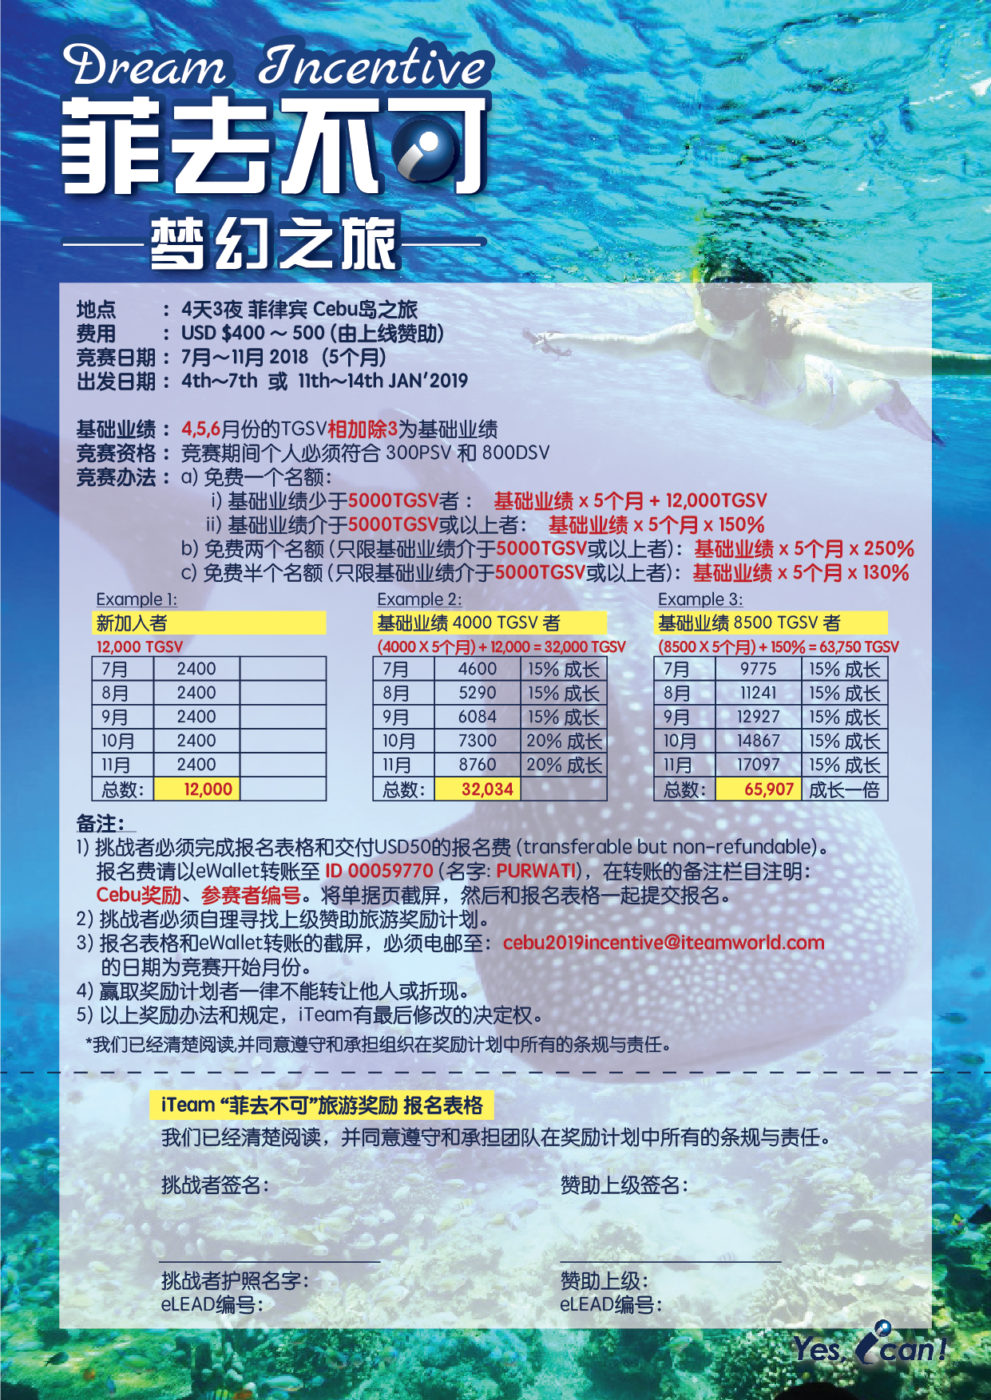 2018 – 菲去不可, 梦幻之旅 (Dream Incentive)